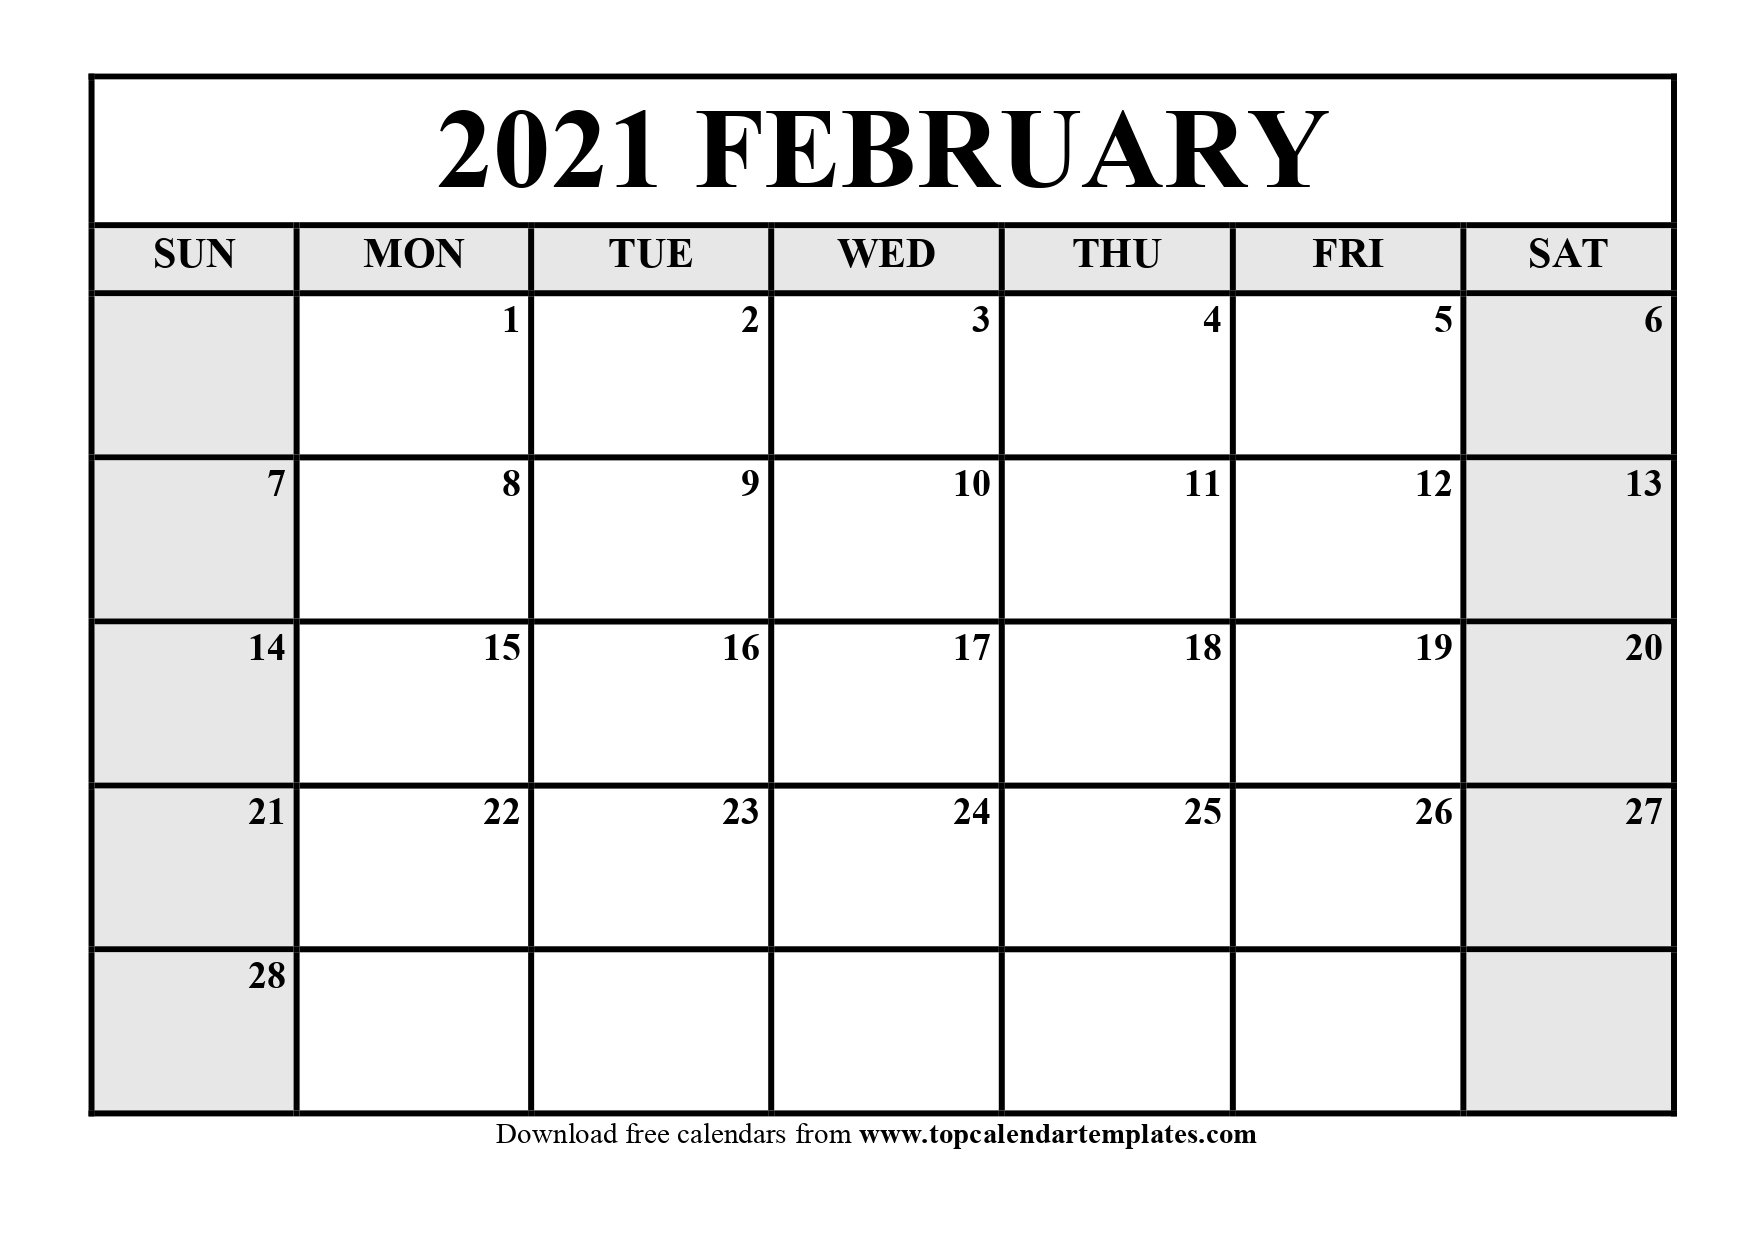 2021 Print Free Calendars Without Downloading | Calendar Printables Free Blank with regard to 2021 Free Printable Weekly Calendar Blank Image